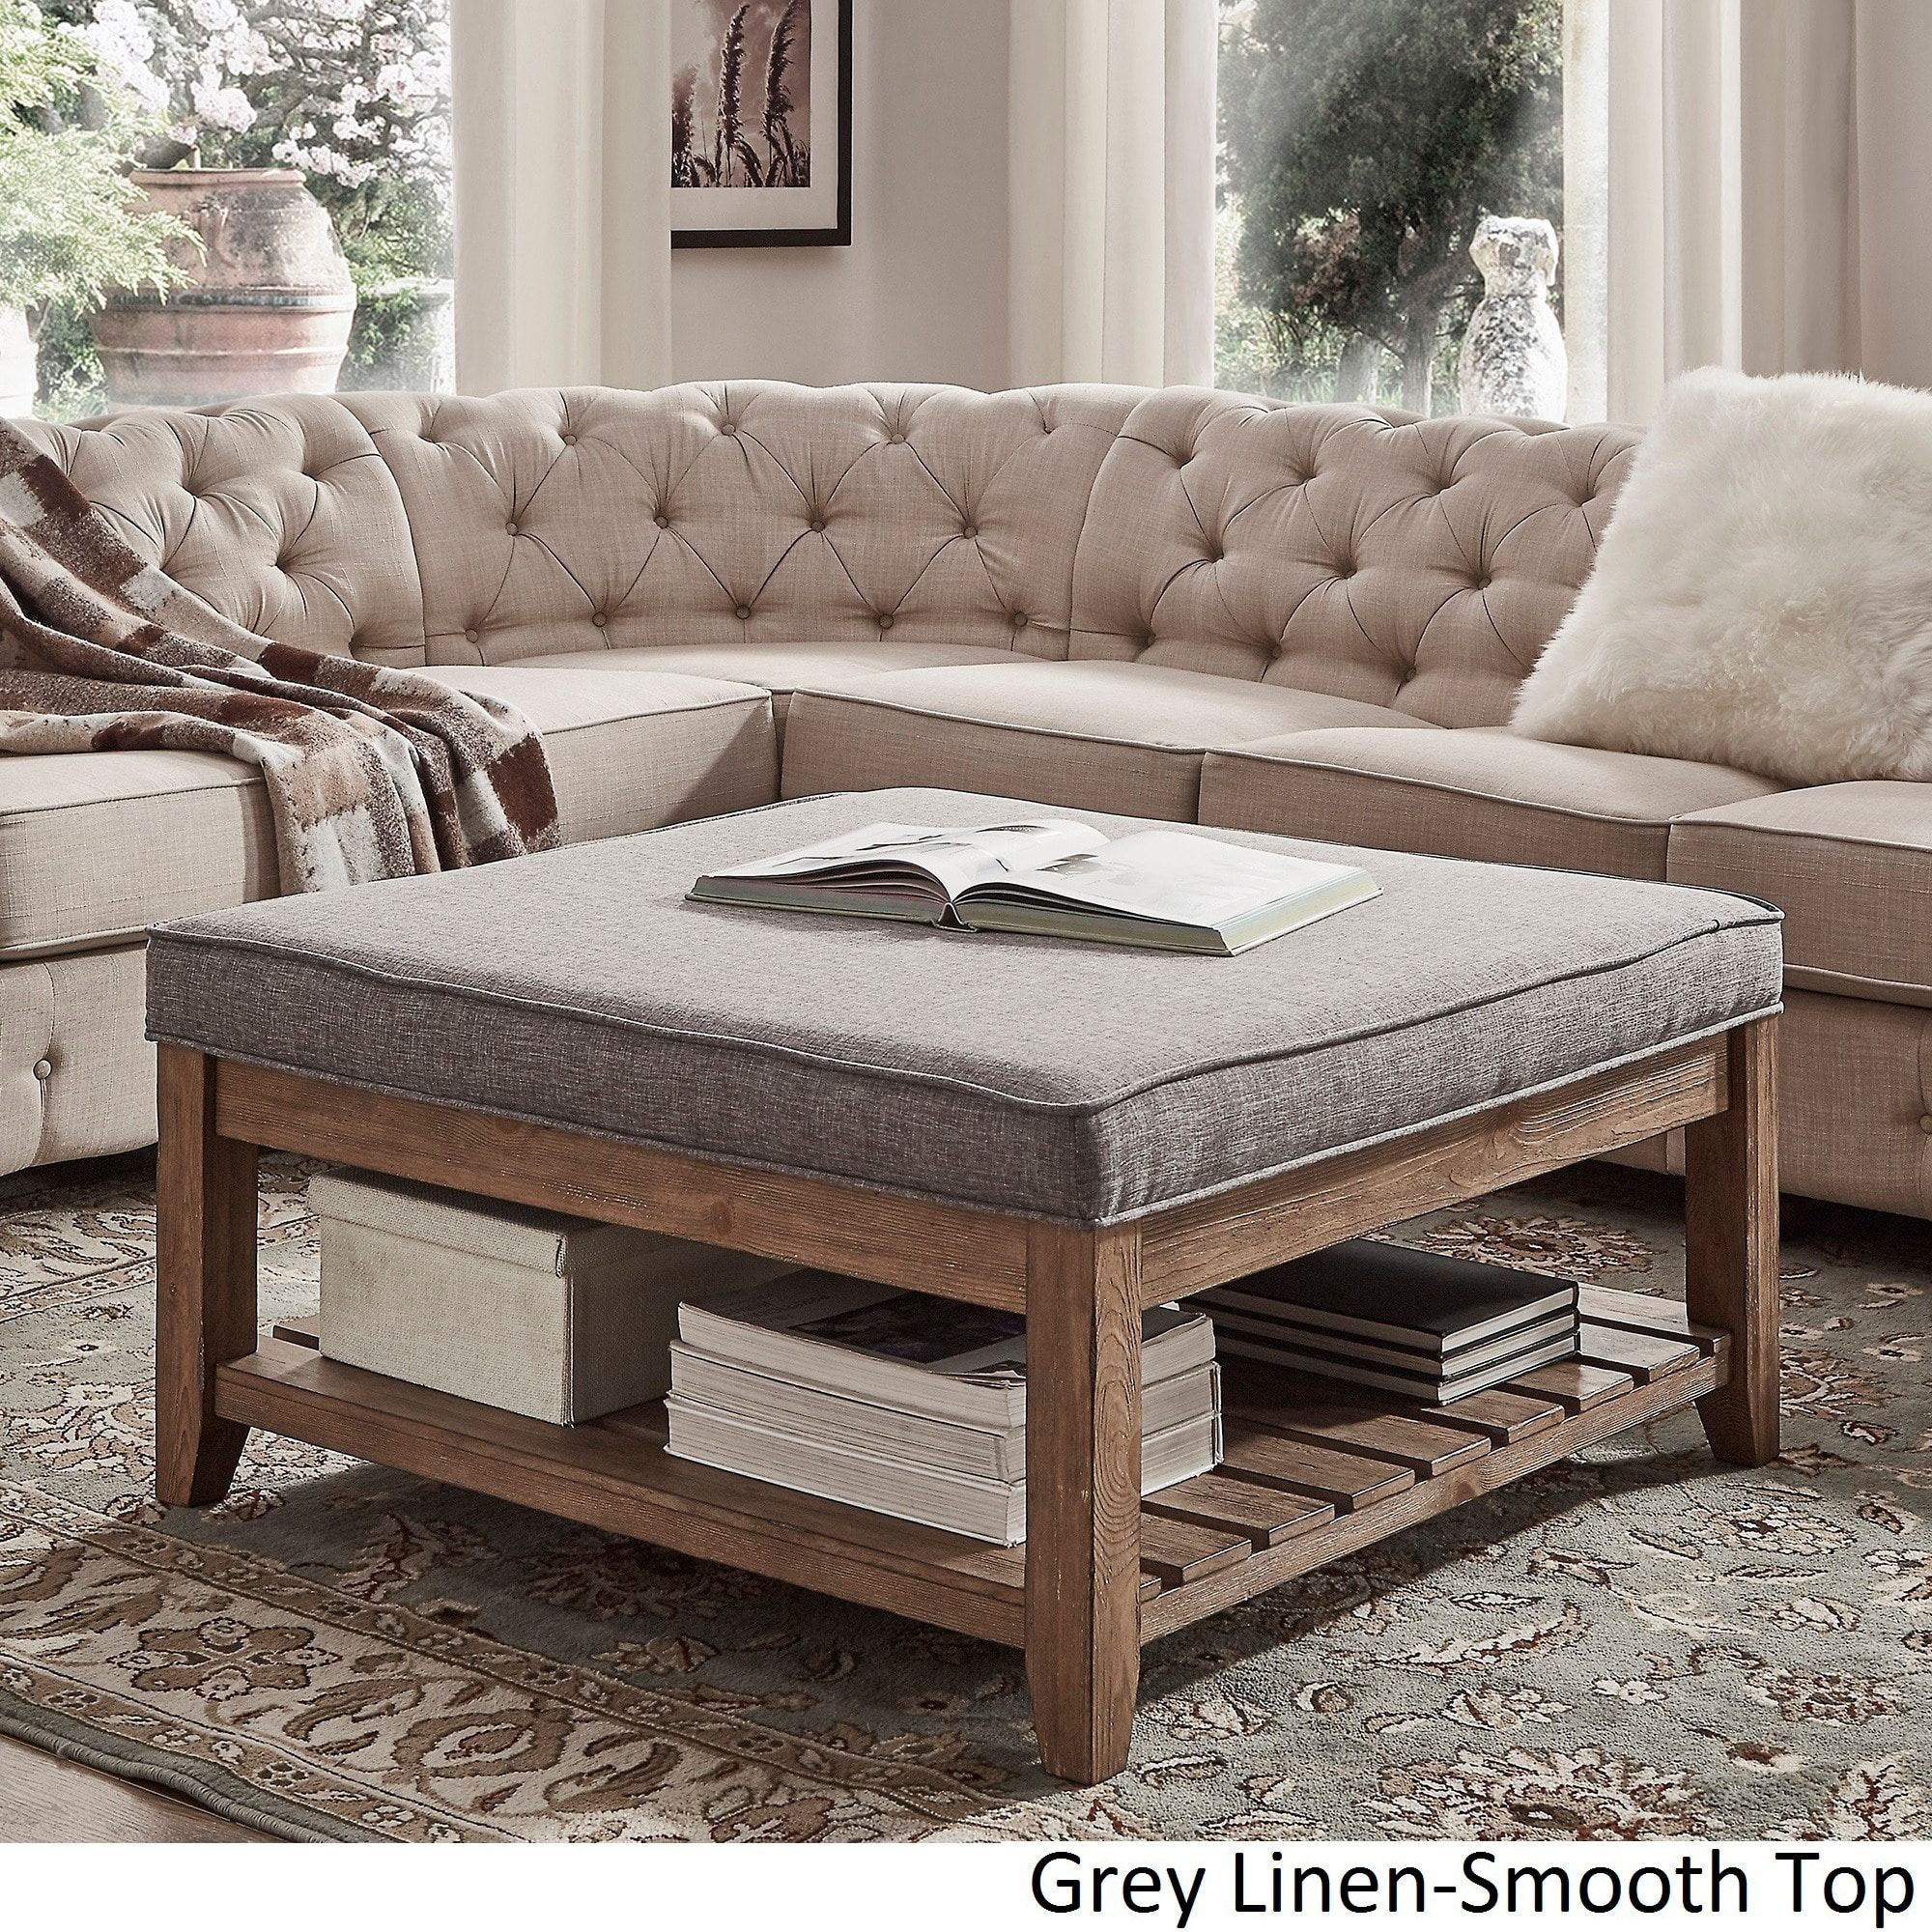 Astounding Lennon Pine Planked Storage Ottoman Coffee Table By Inspire Caraccident5 Cool Chair Designs And Ideas Caraccident5Info